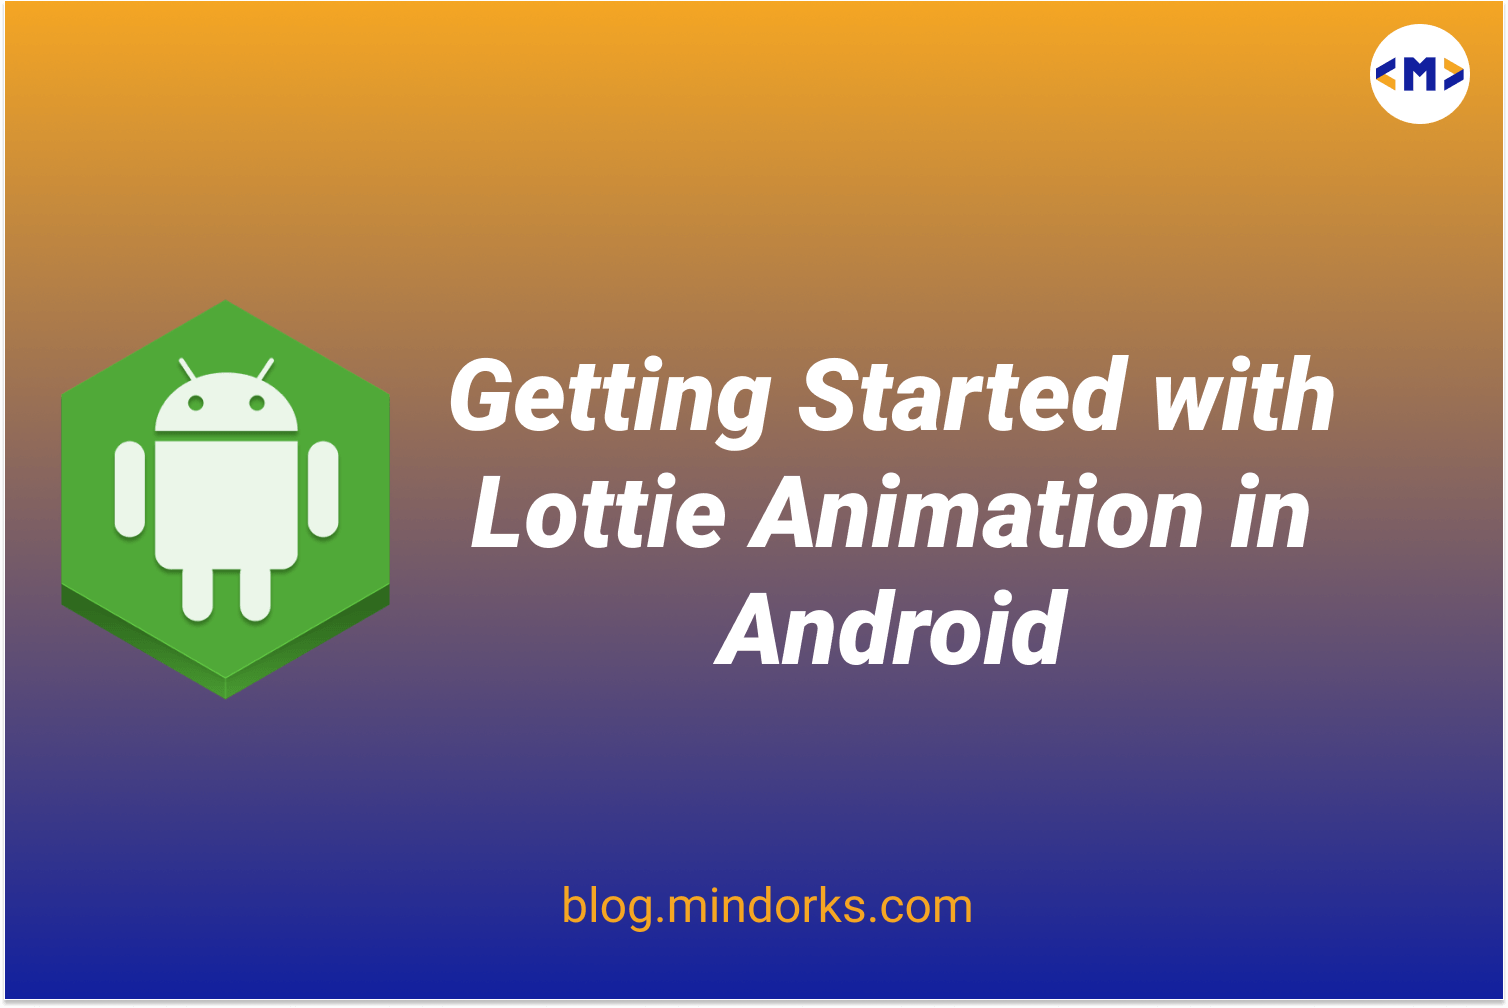 Getting started with Lottie Animation in Android